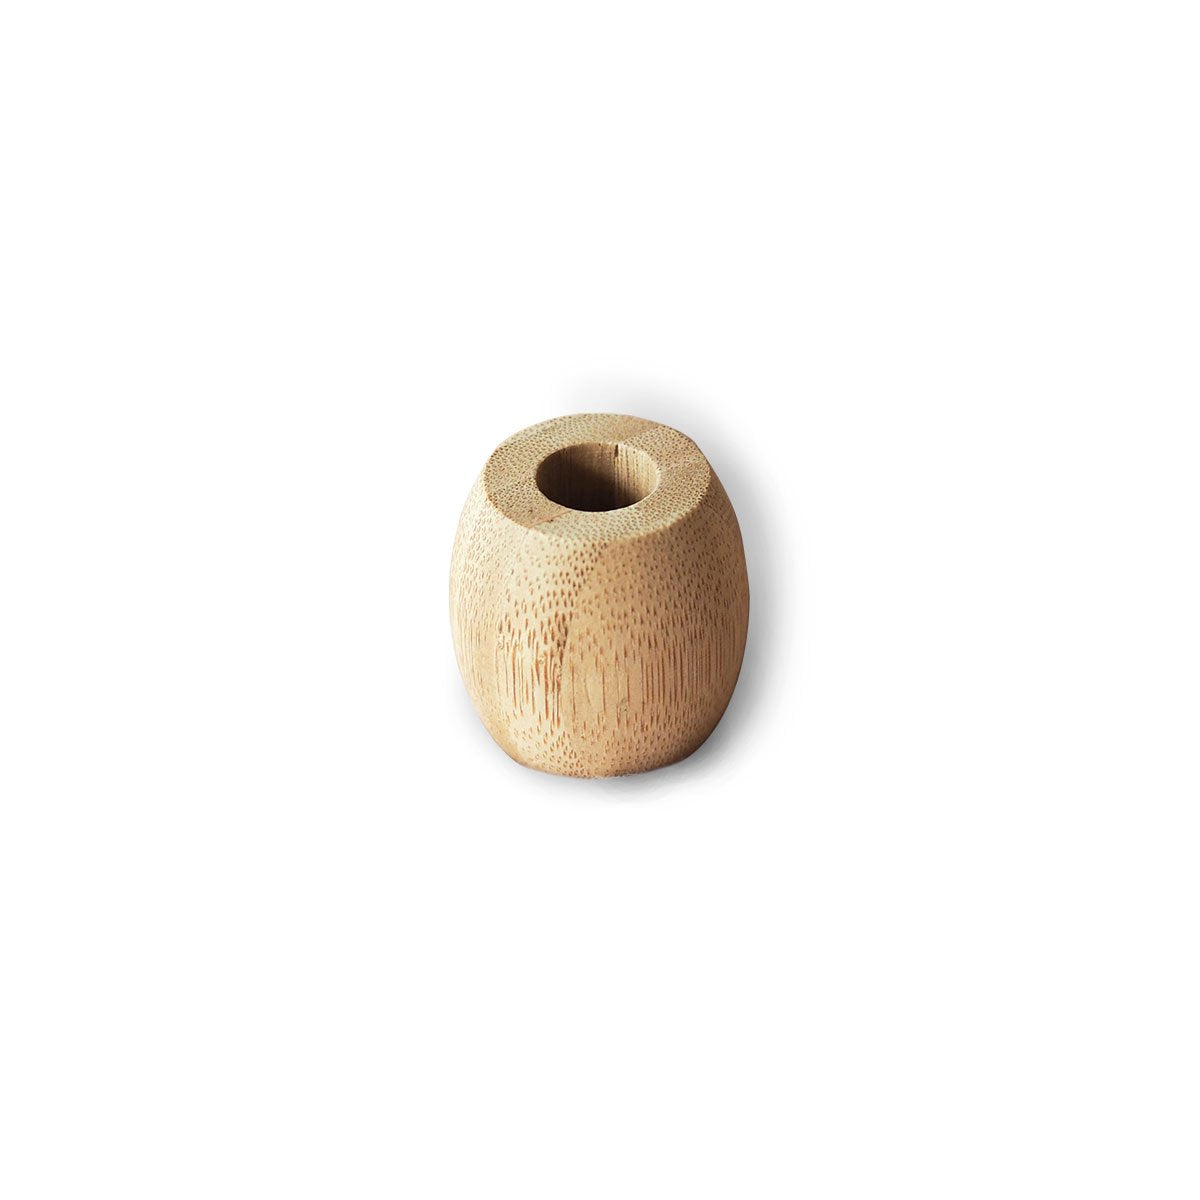 Brushiton Bamboo Toothbrush Holder (Brushiton) -Toothbrush Holder